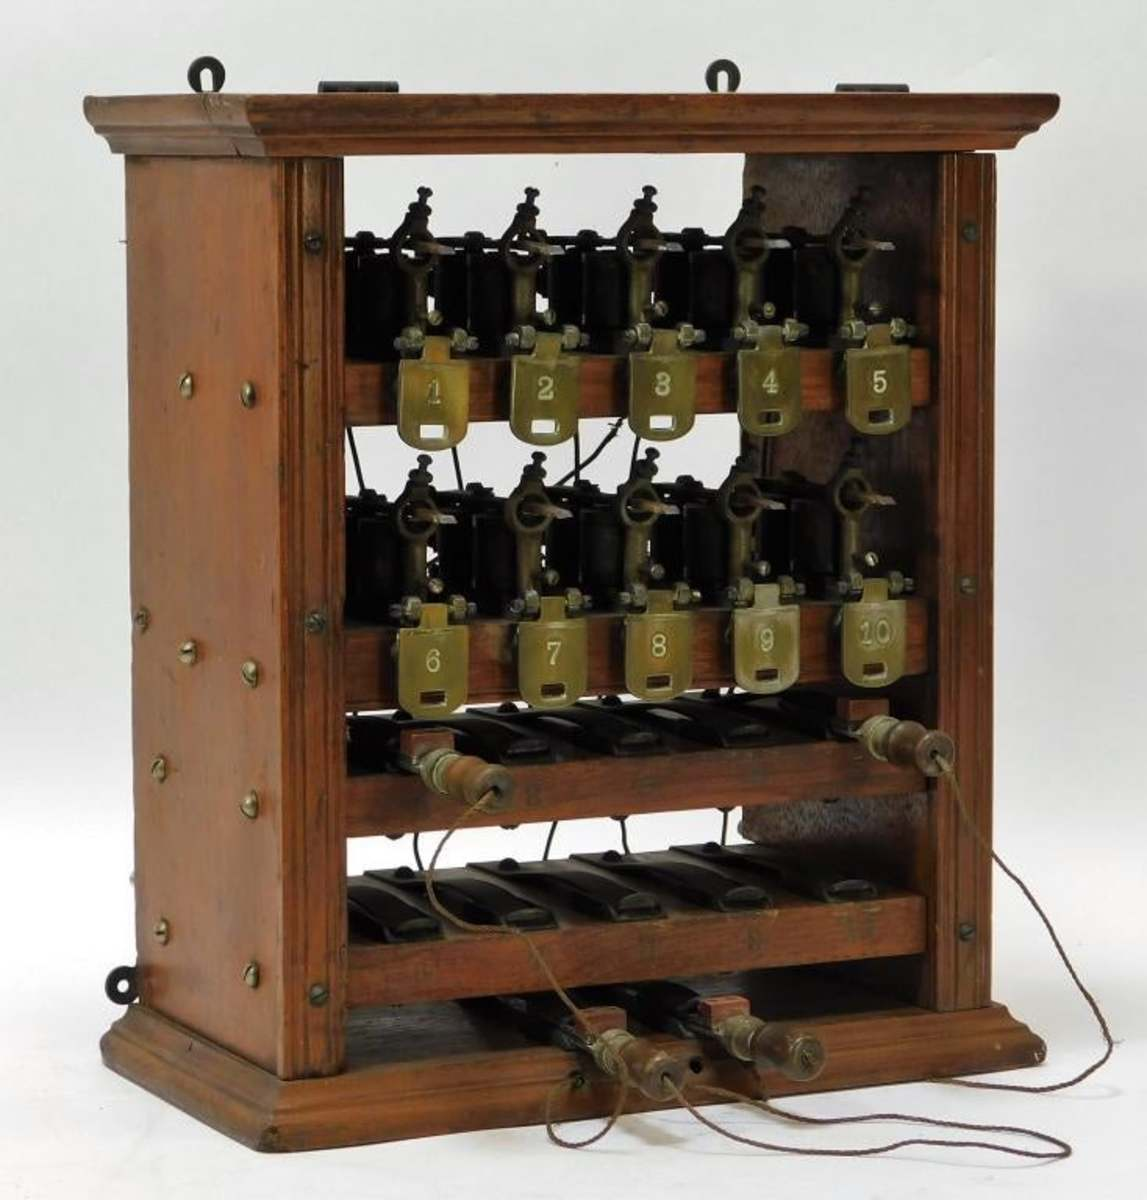 "Fifty-six bidders vied for this mahogany telephone switchboard box, United States,19th century. unidentified company, from the collection of the New Jersey Telephone Pioneers of America Museum. Overall 12-3/4"" x 11-1/4"", $11,000 (est: $200-$300)."